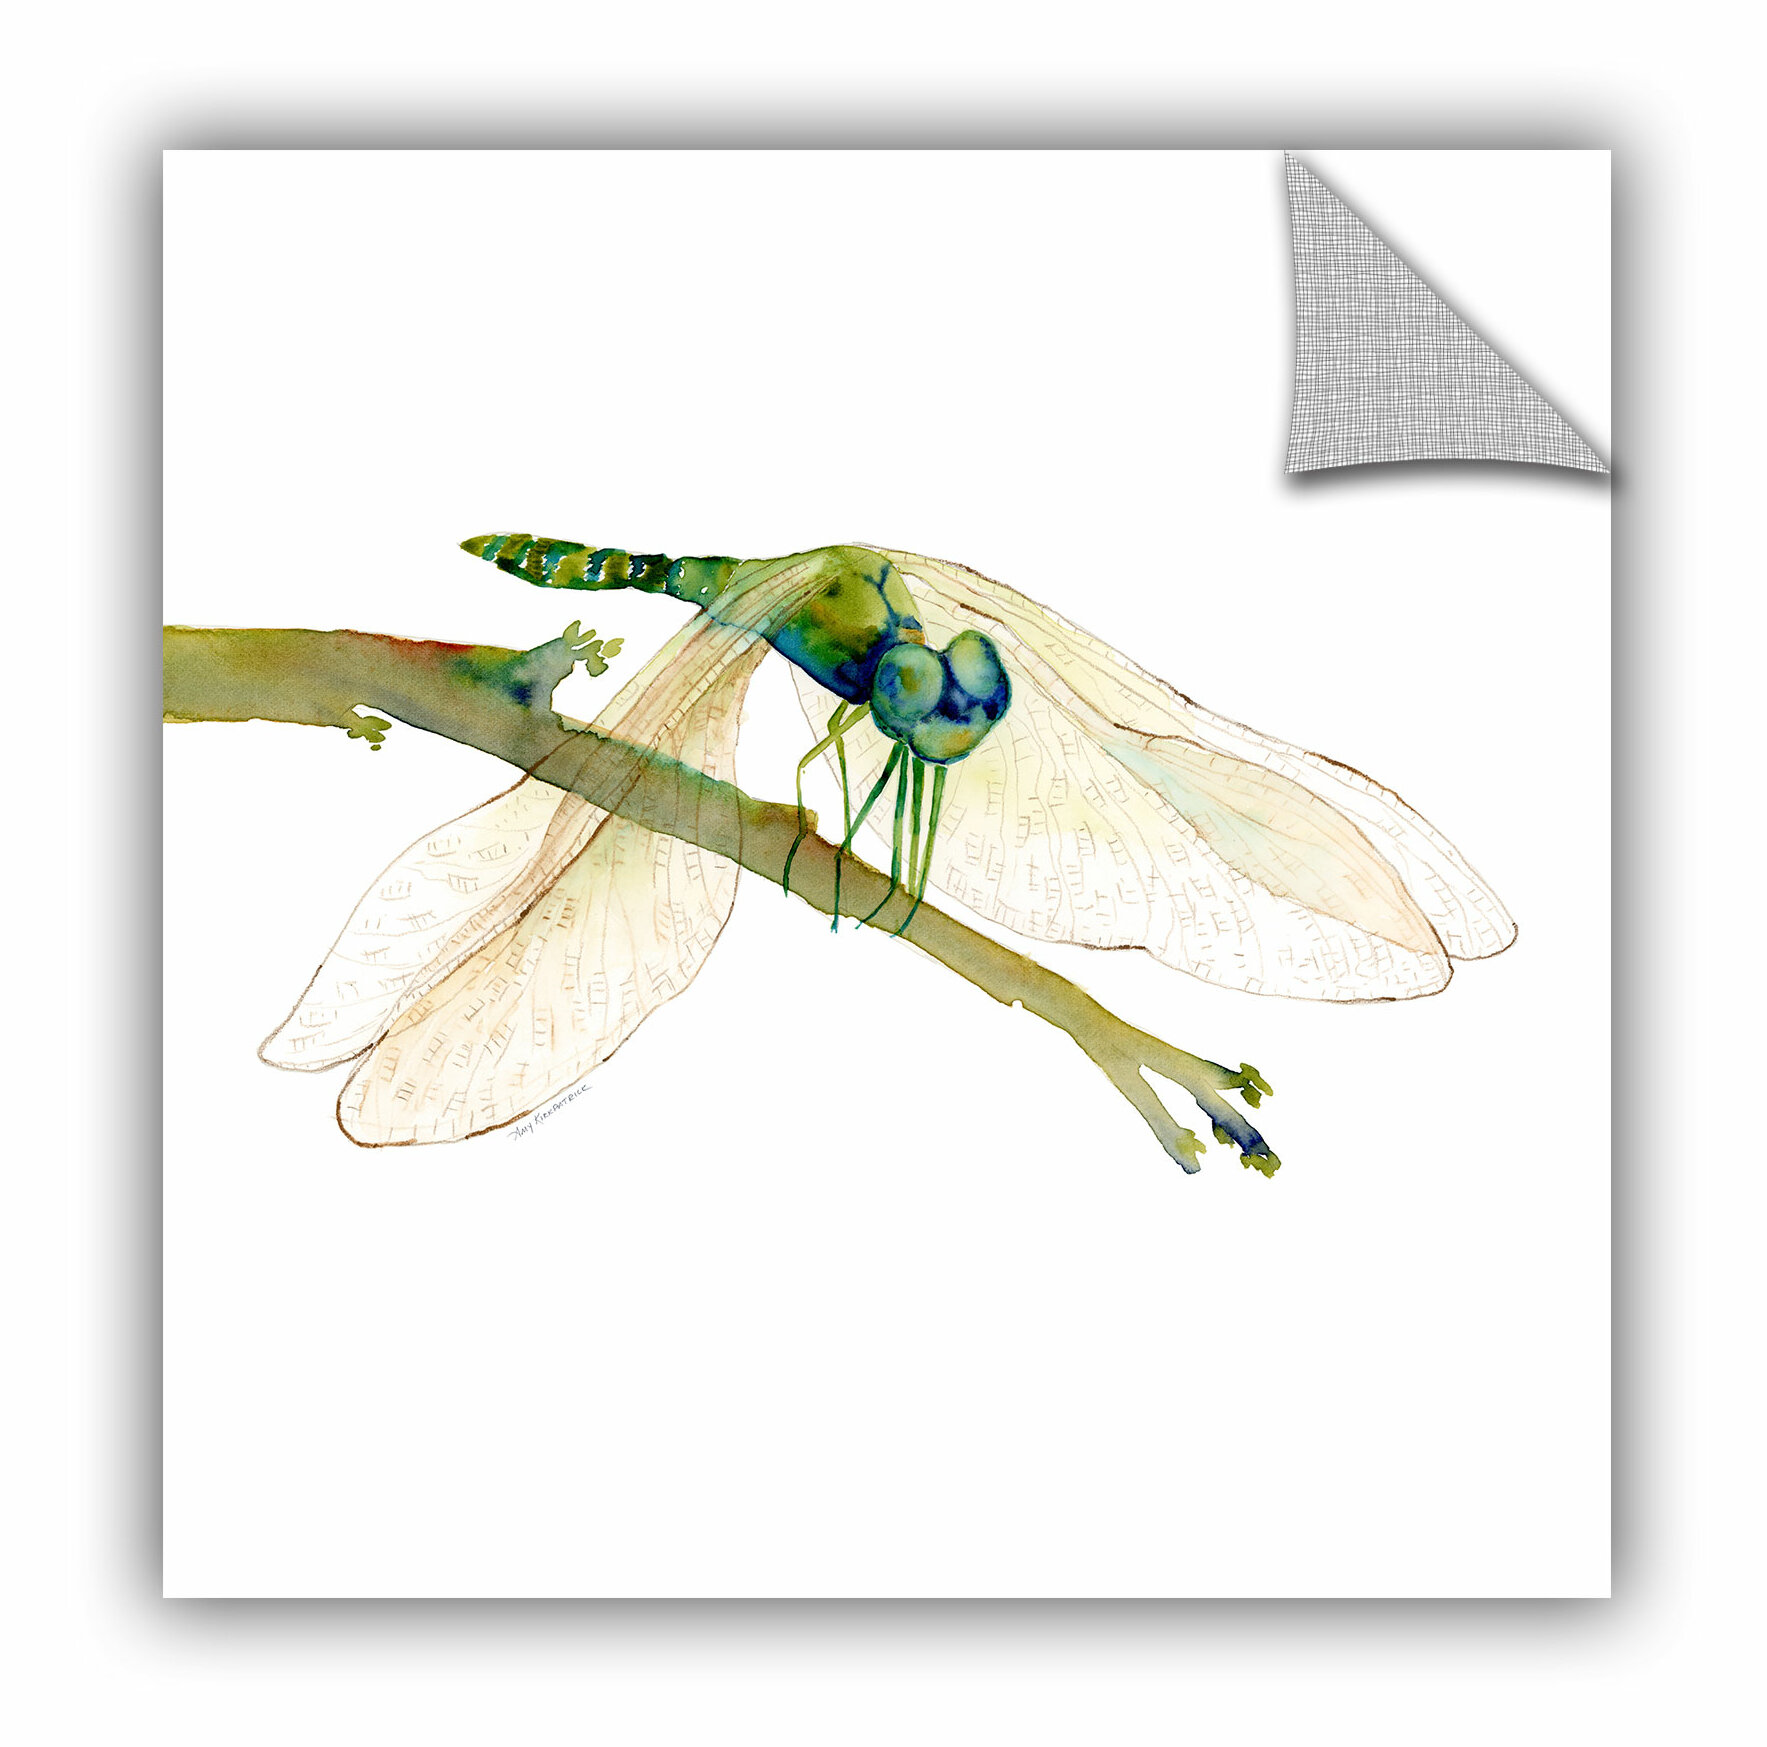 Artwall dragonfly sq wall mural wayfair for Dragonfly mural